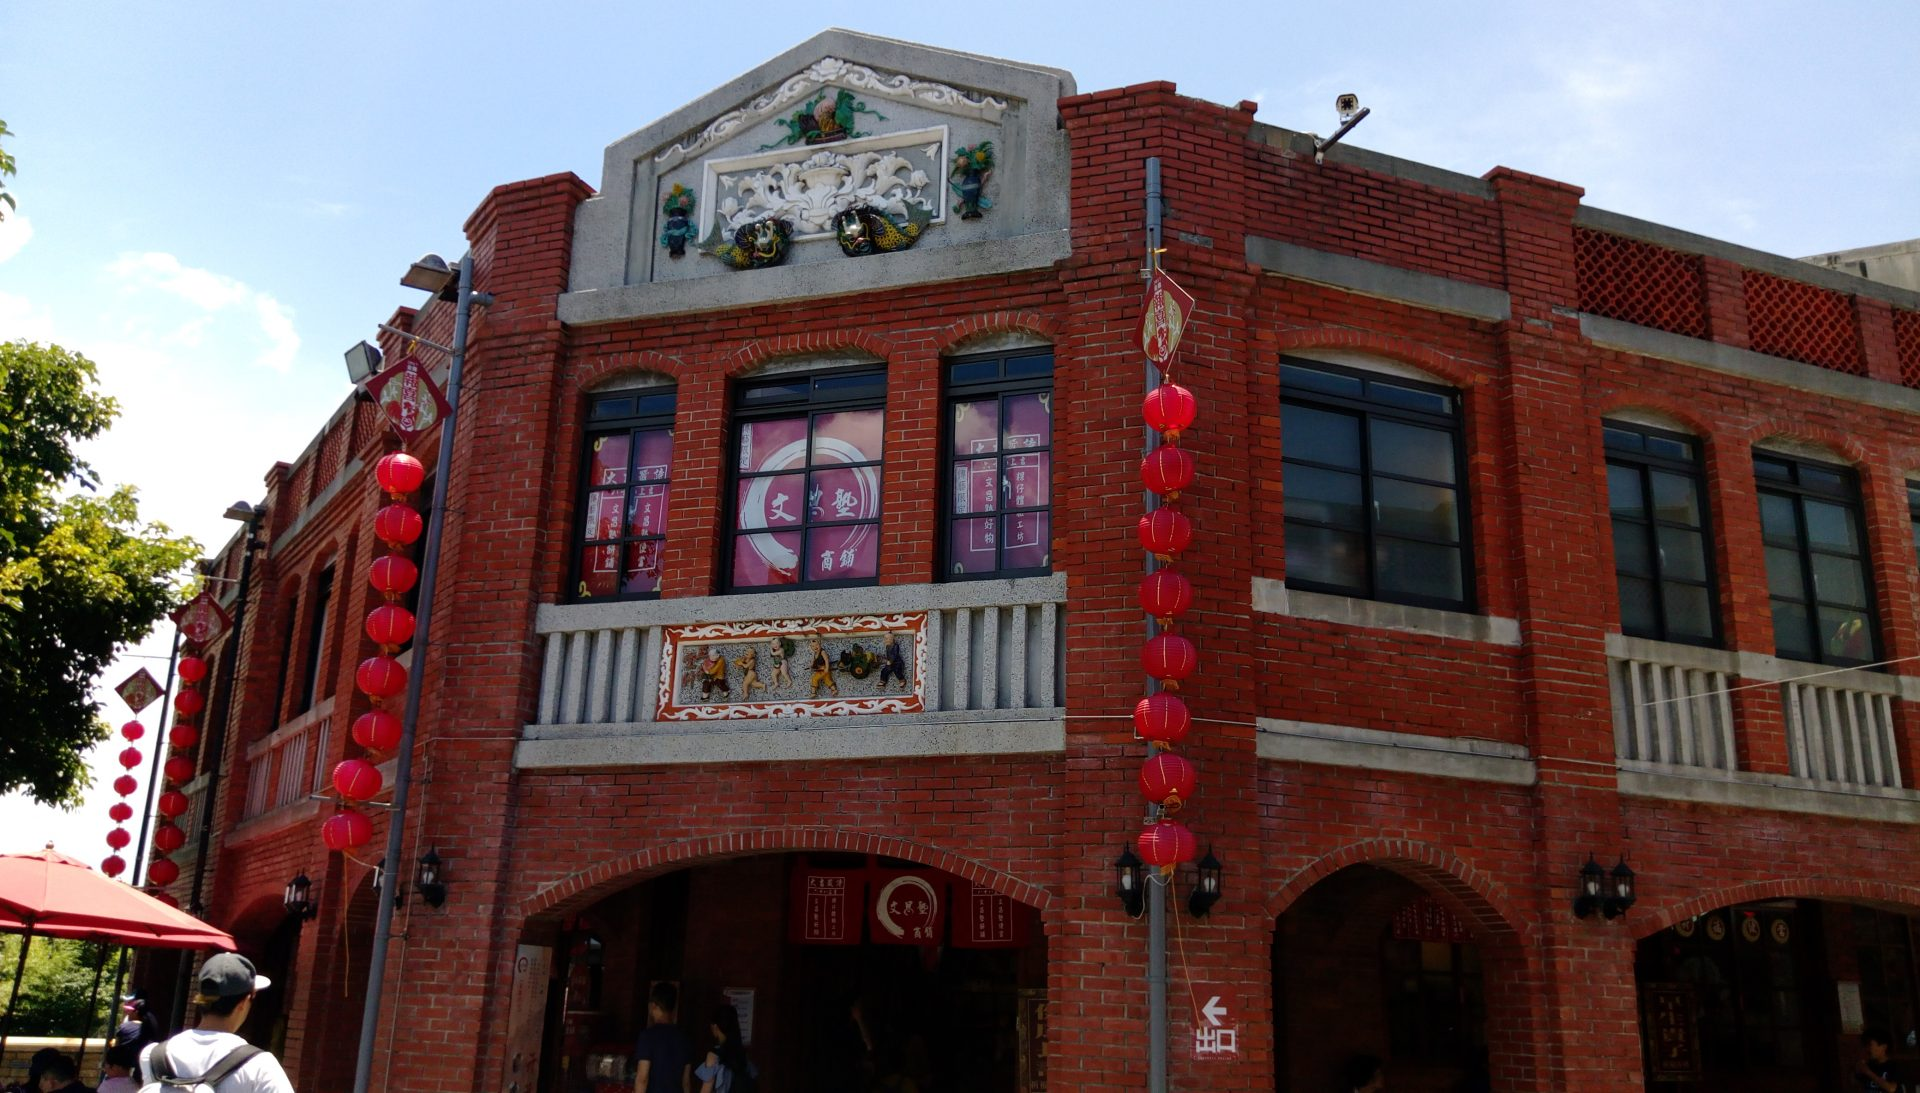 The modern red-brick buildings with traditional rooftop and red lanterns hanging over the narrow street in the National Center for Traditional Arts create an atmosphere that brings visitors back to an earlier time in Taiwan. (Image: Juliet Fu/ Vision Times)